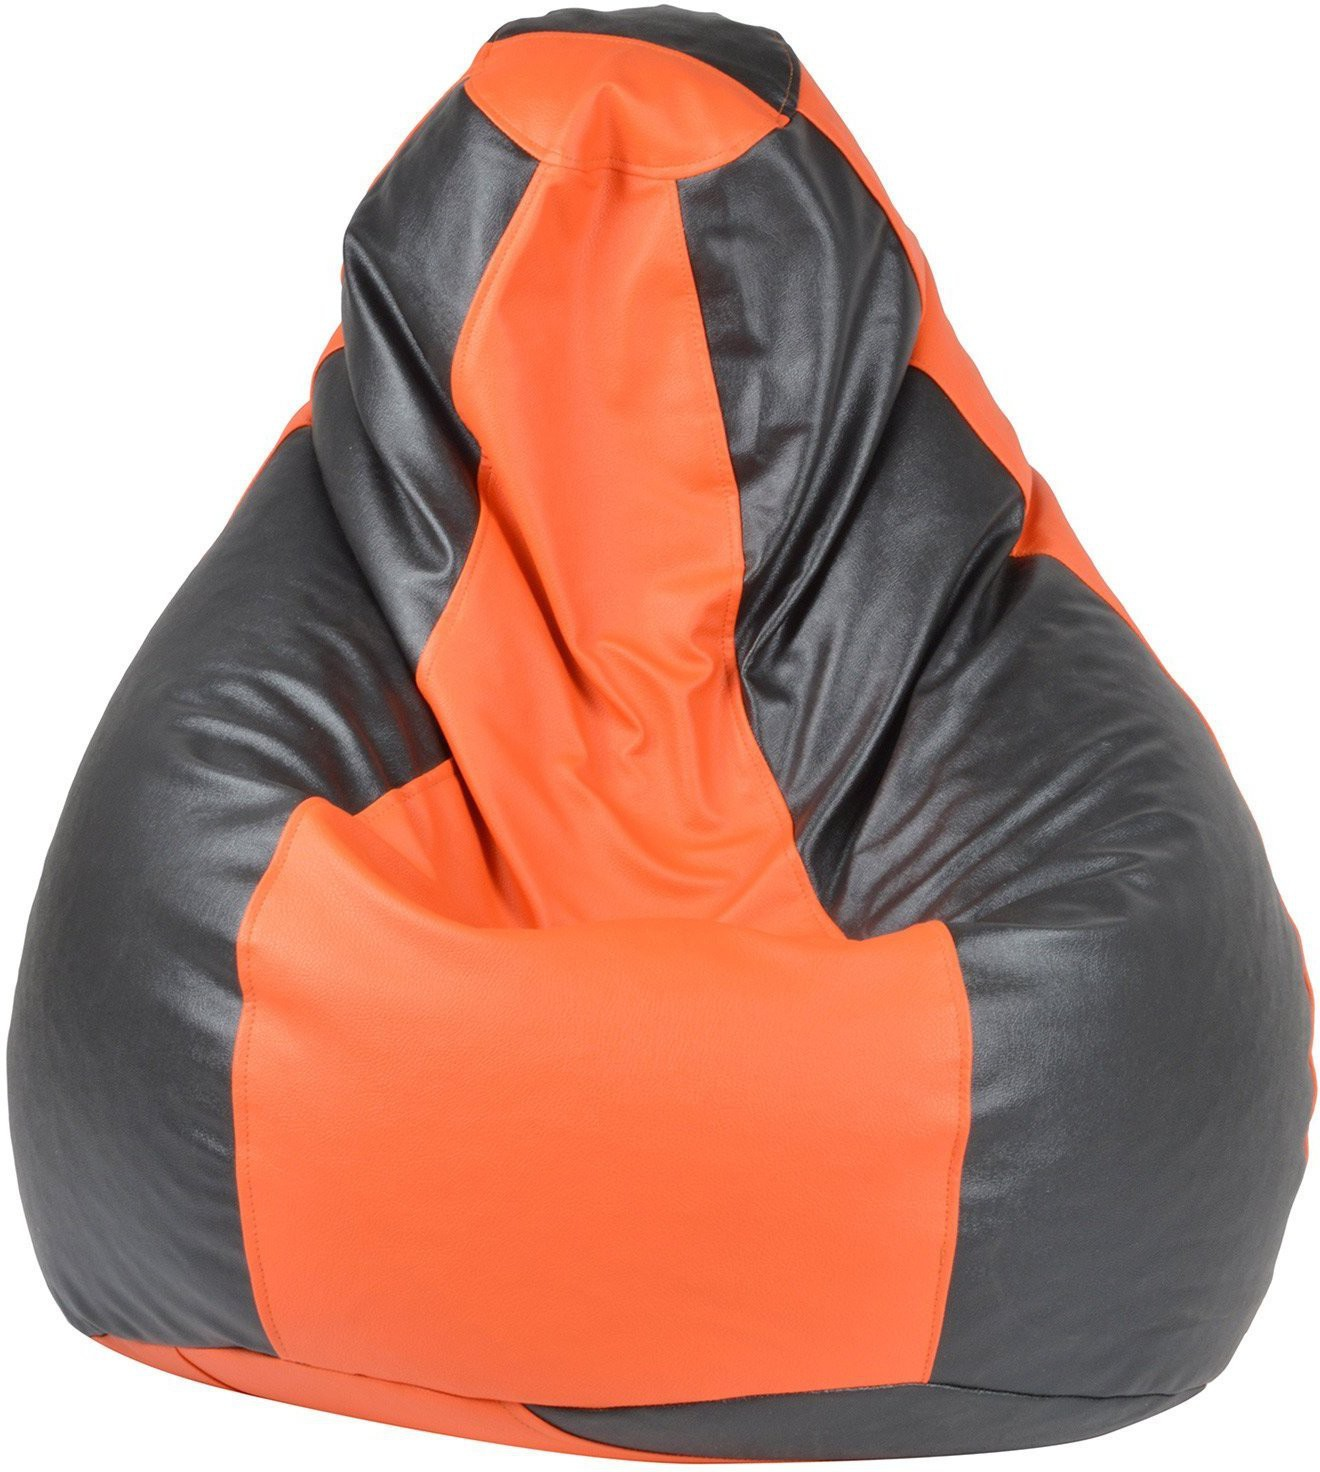 View Galaxy Decorz XL Bean Bag Cover(Orange, Black) Furniture (Galaxy Decorz)